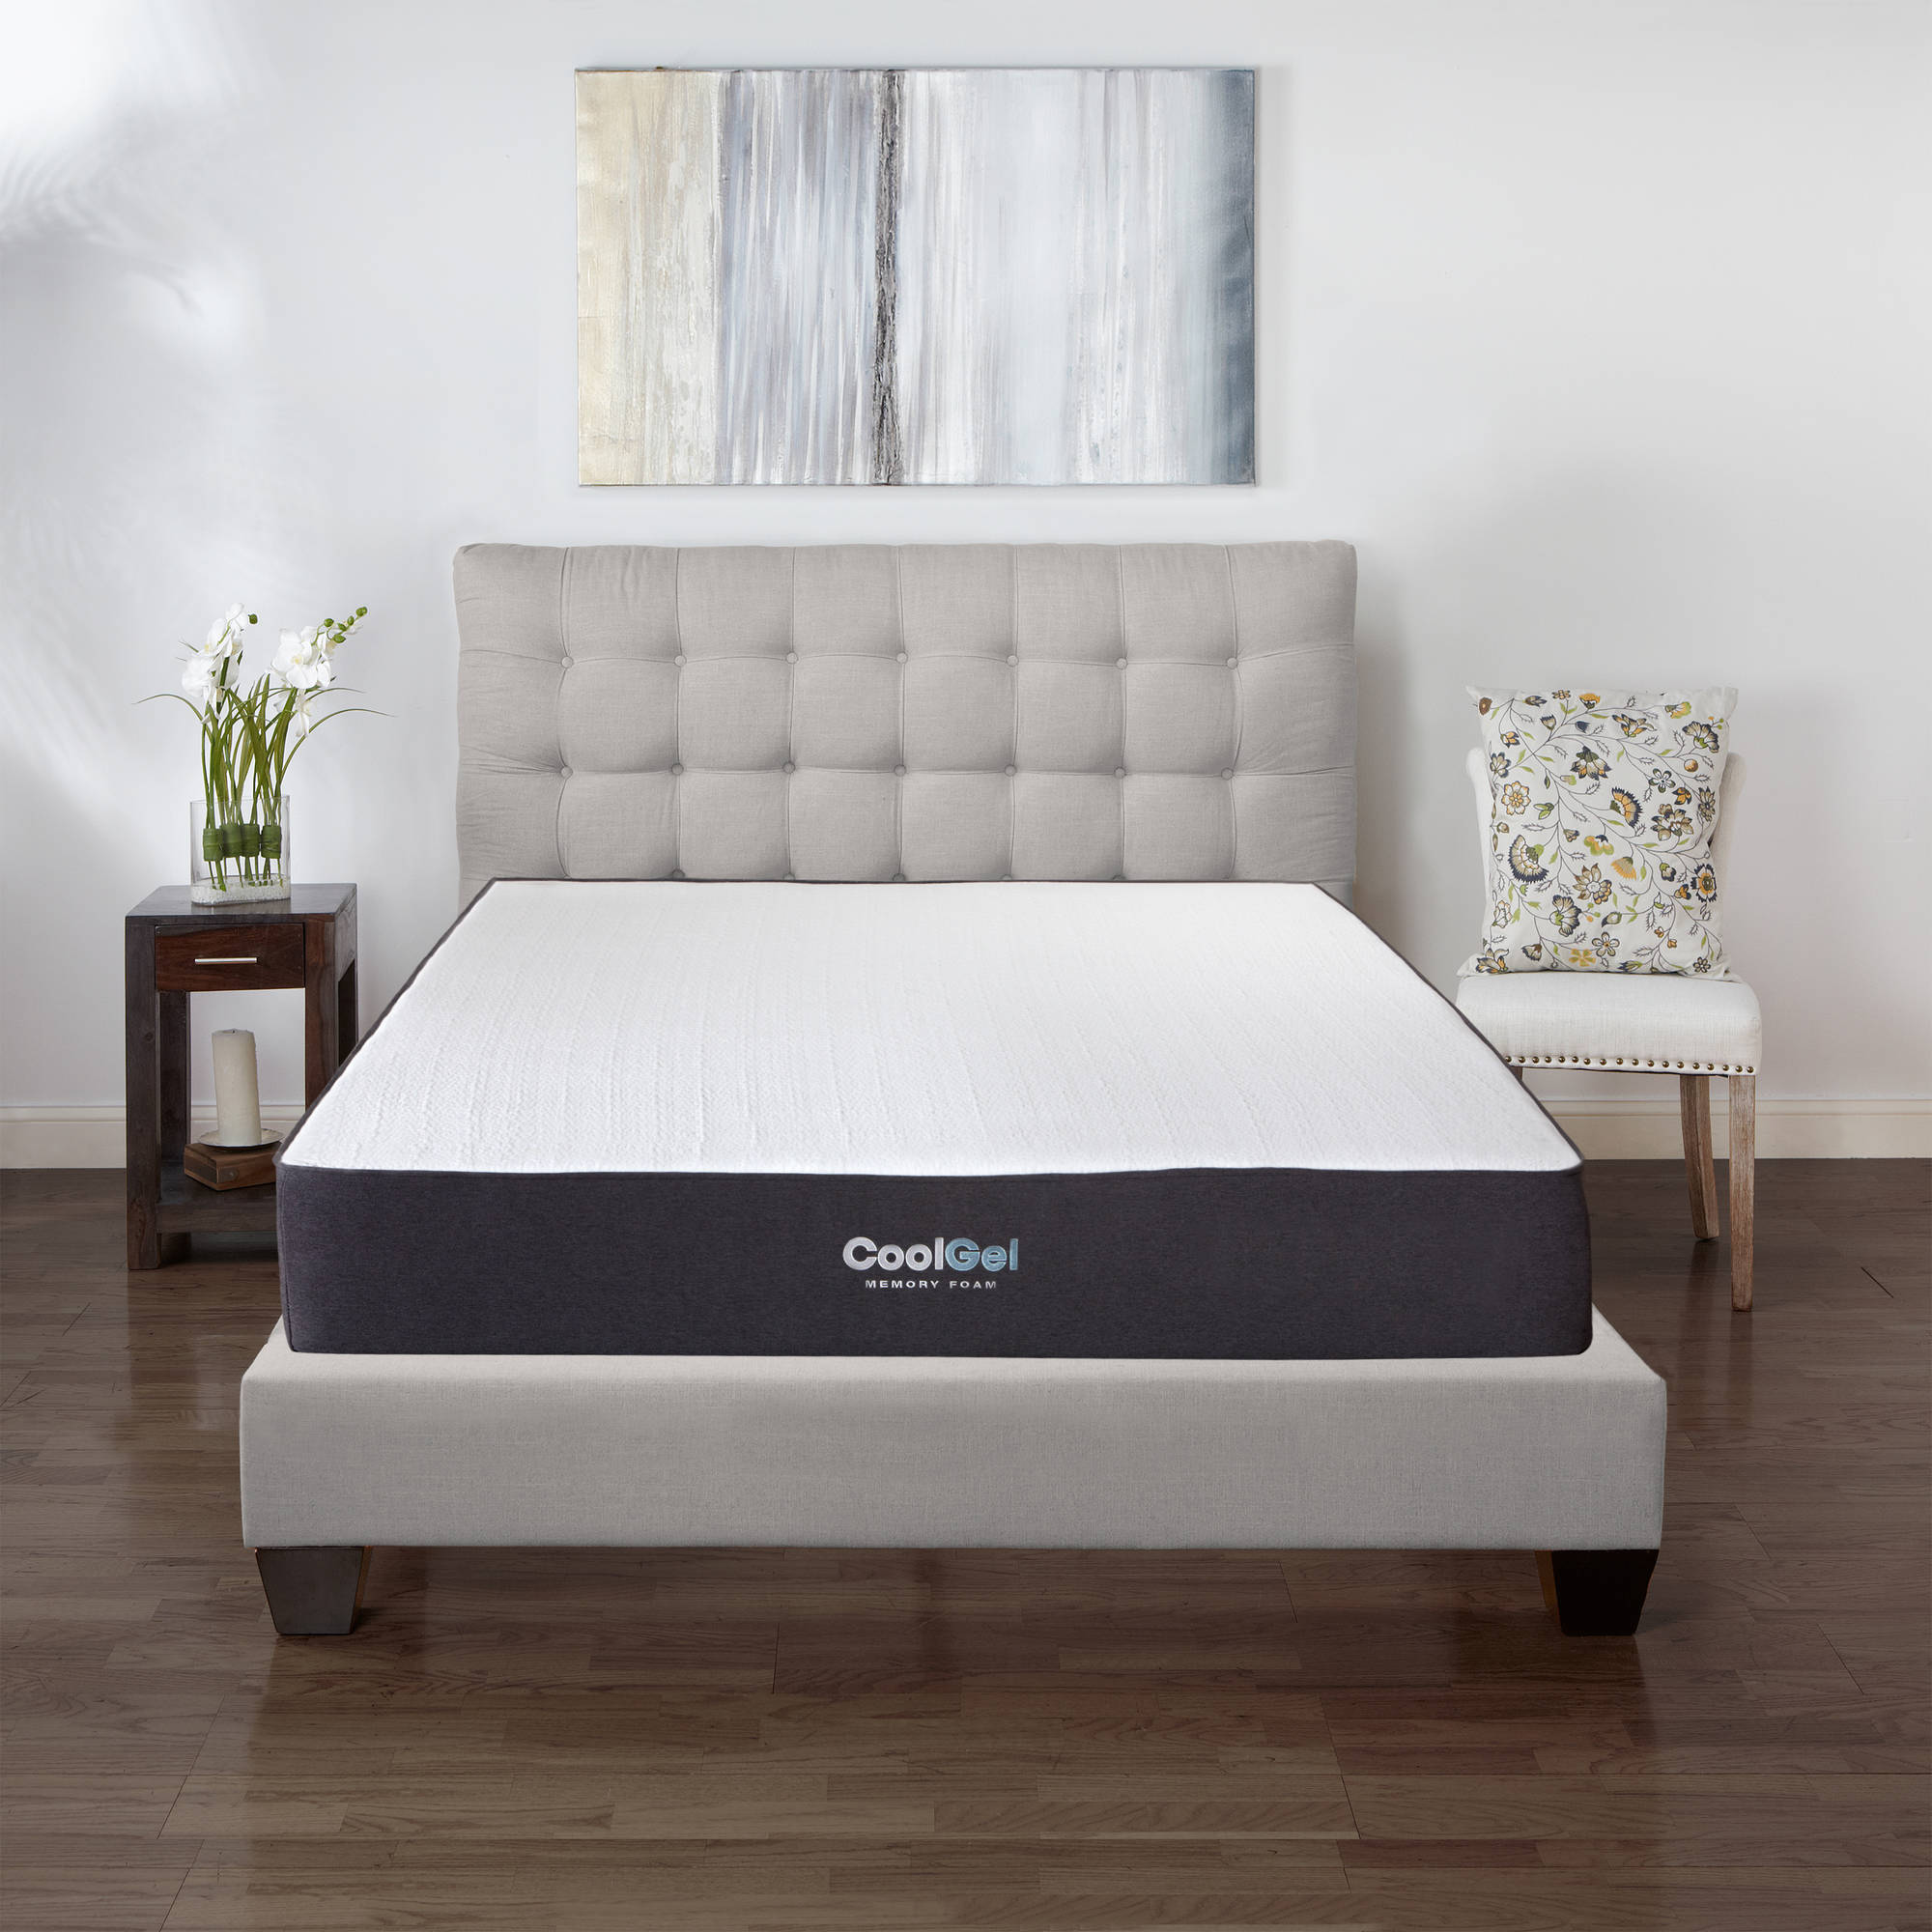 California King Mattresses - Walmart.com